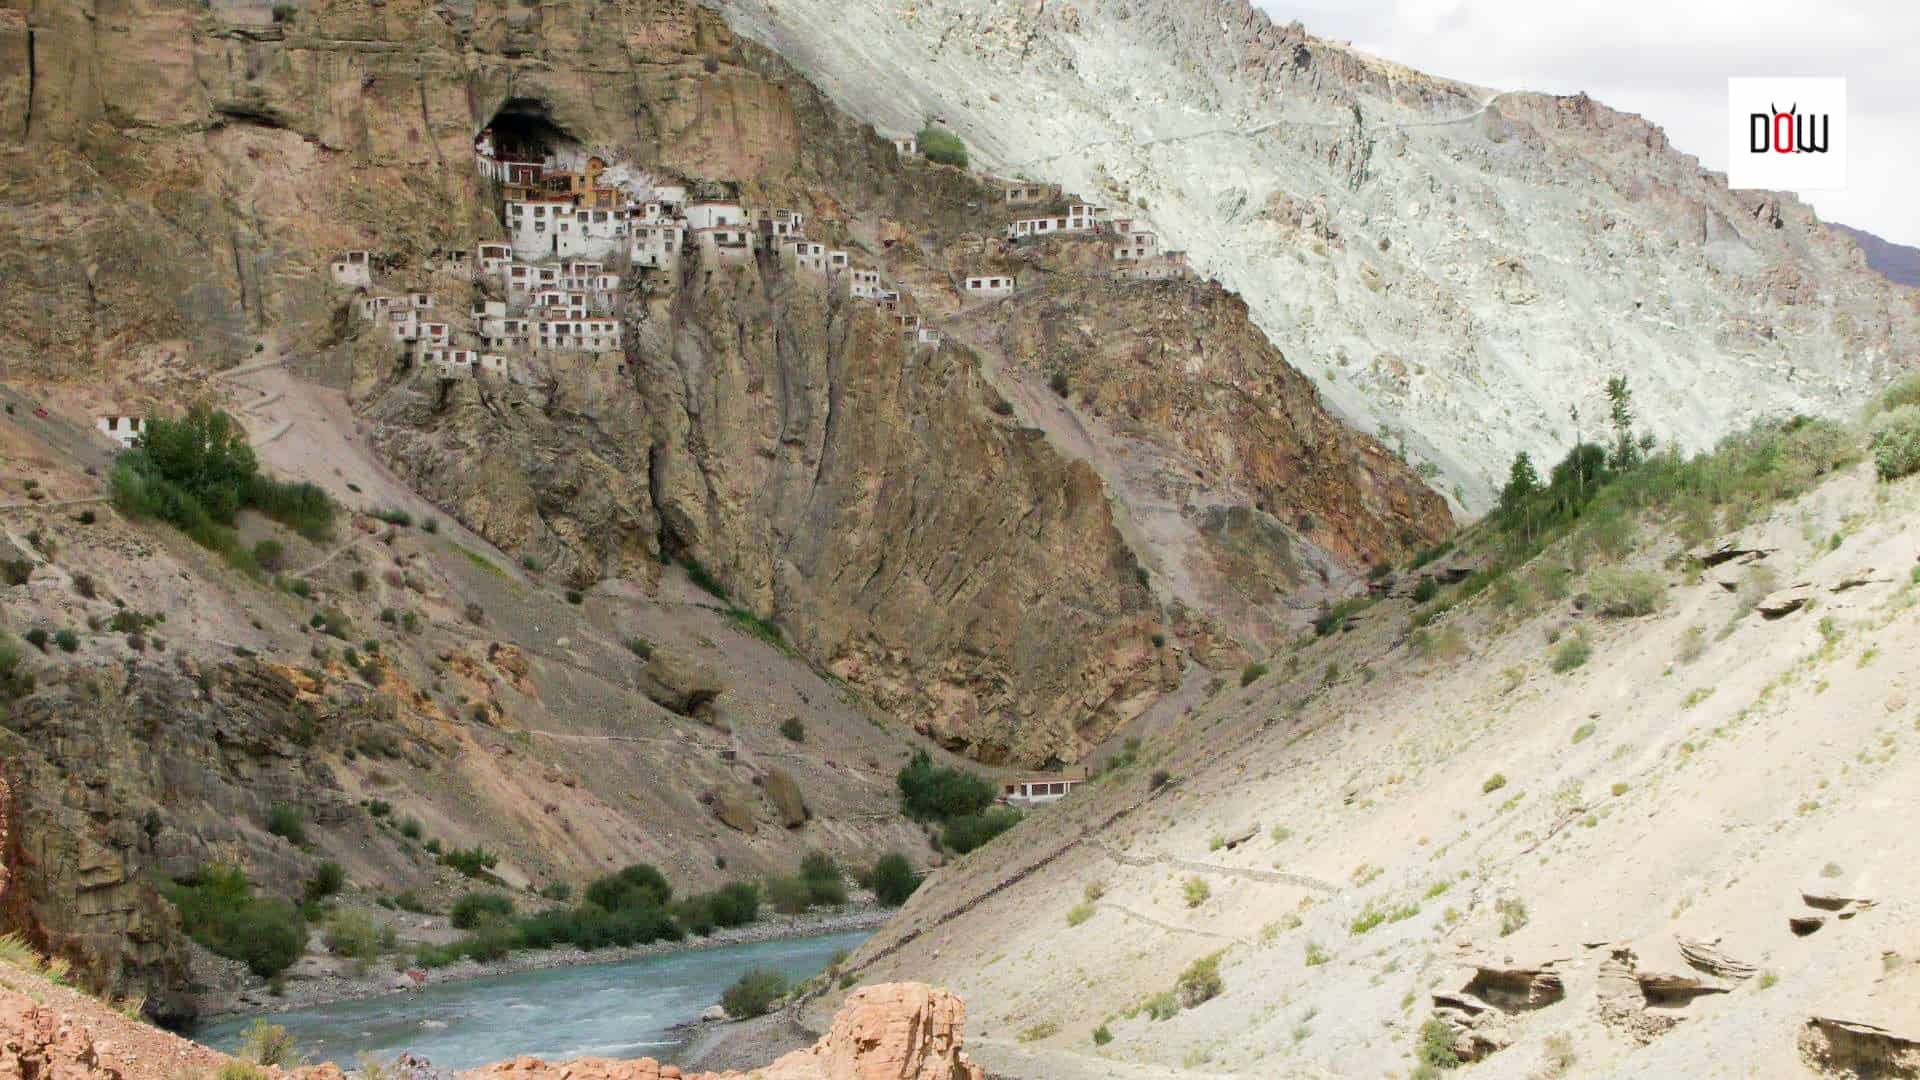 Phugtal Gompa - As seen from the opposite side of Lungnak River